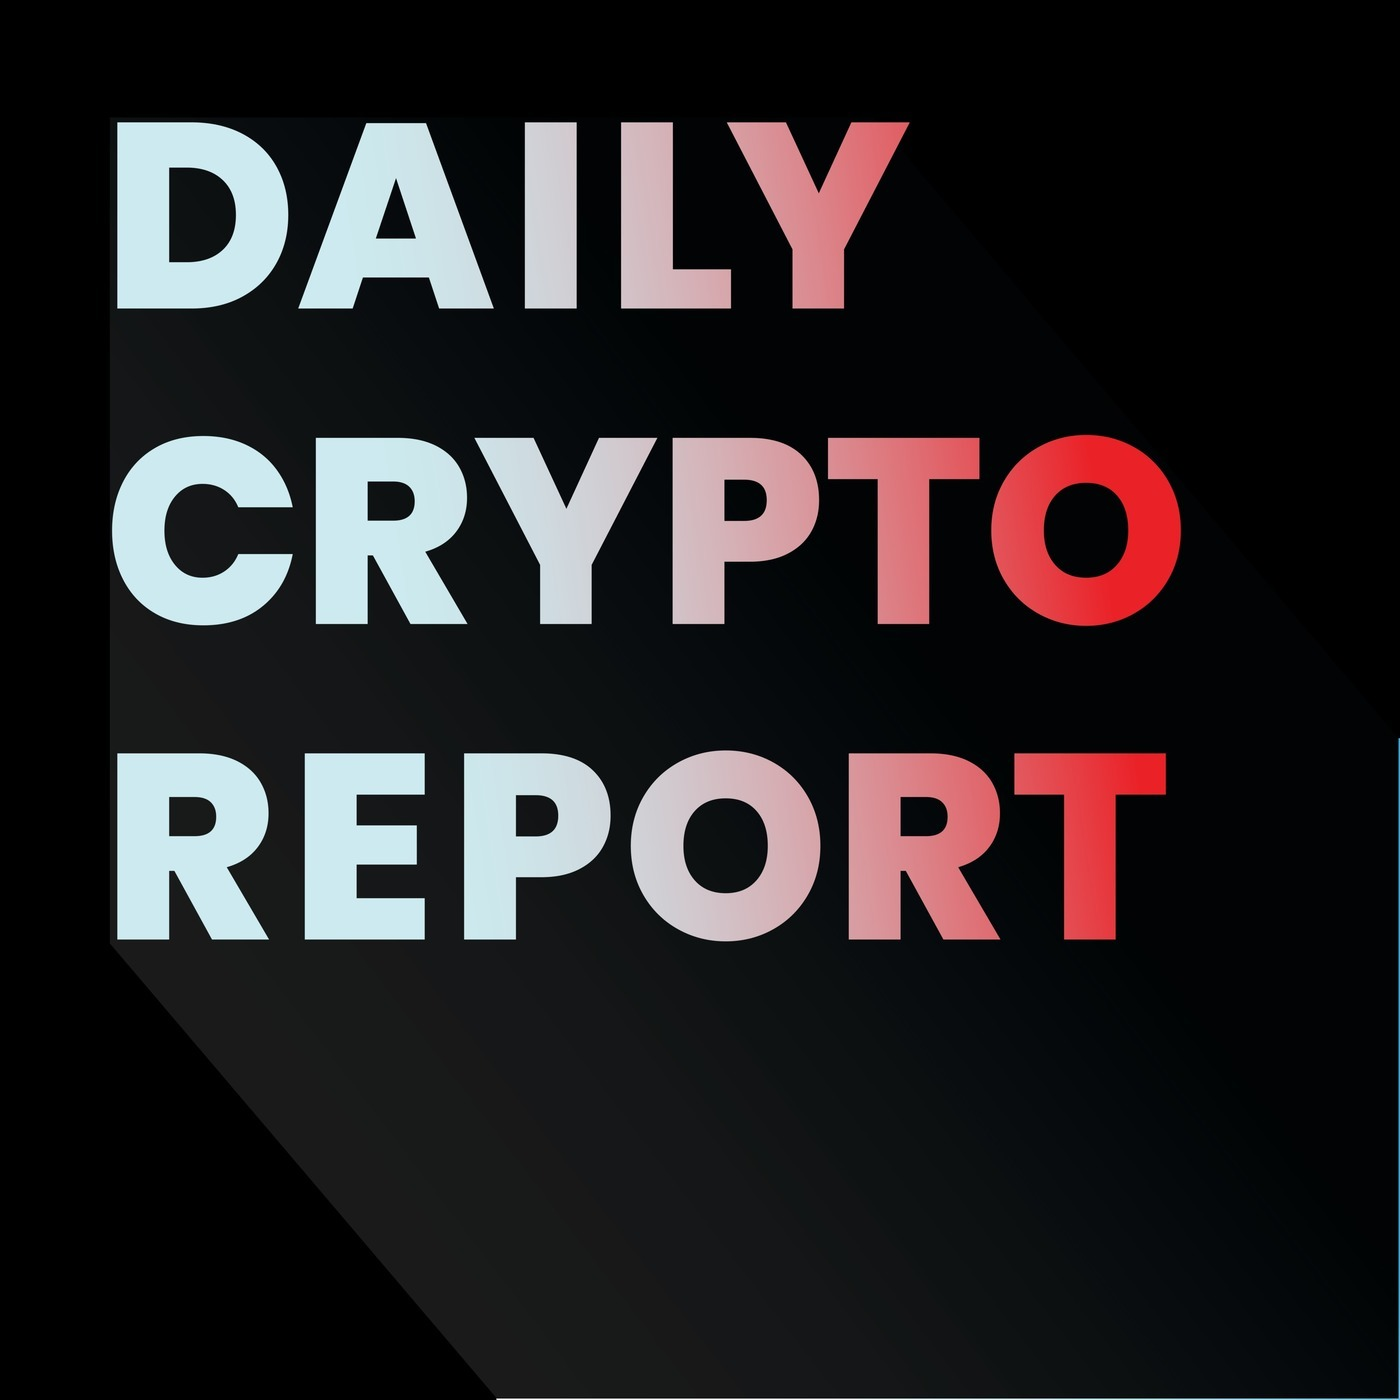 Daily Crypto Report: December 16, 2018